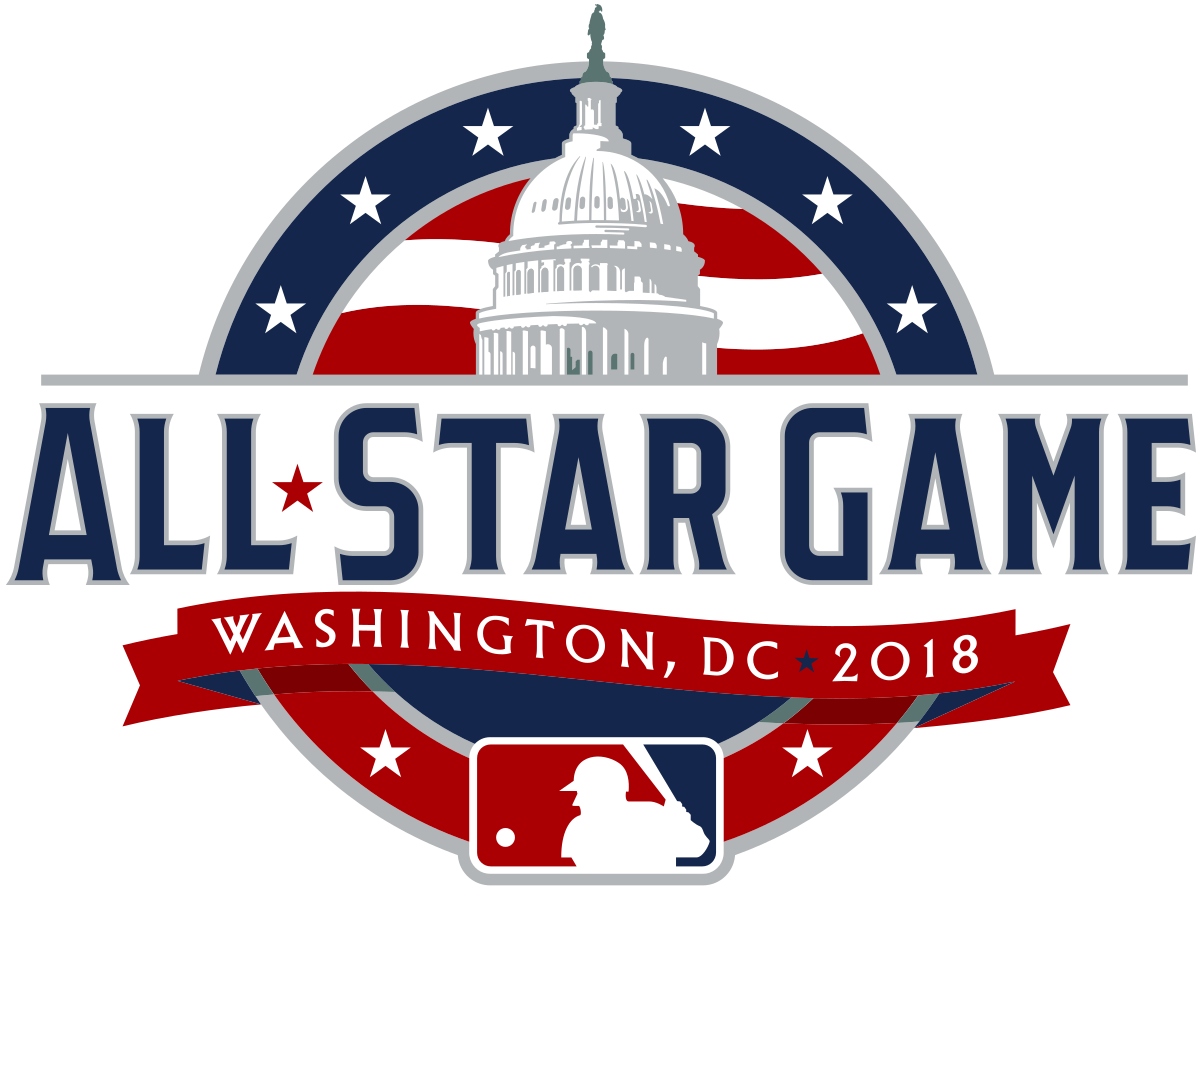 Baseball allstar clipart png graphic library library All Star Game Logo 2018 PNG Image - PurePNG | Free transparent CC0 ... graphic library library